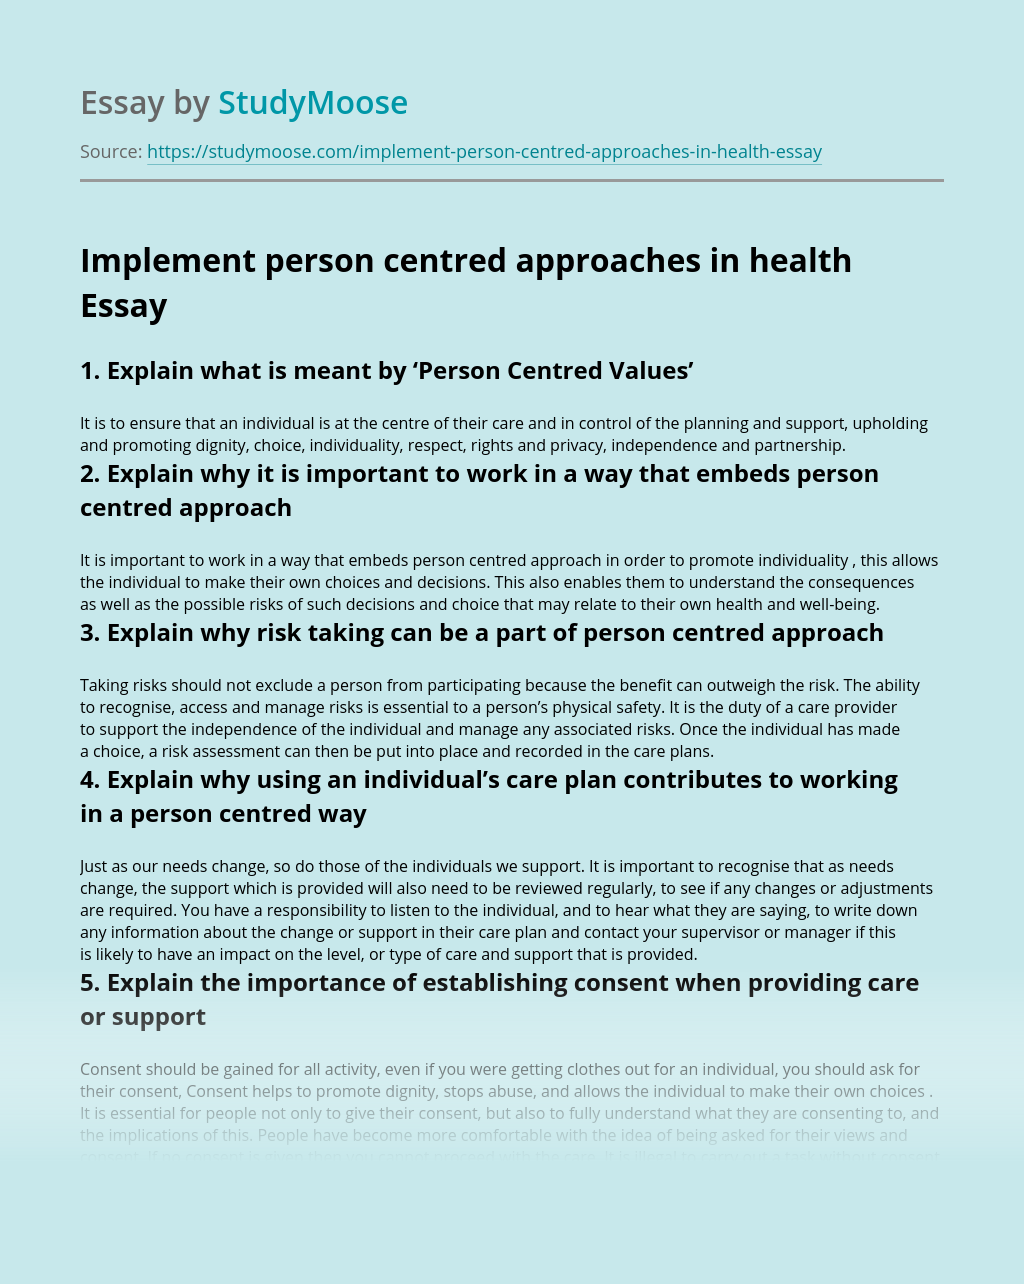 Implement person centred approaches in health